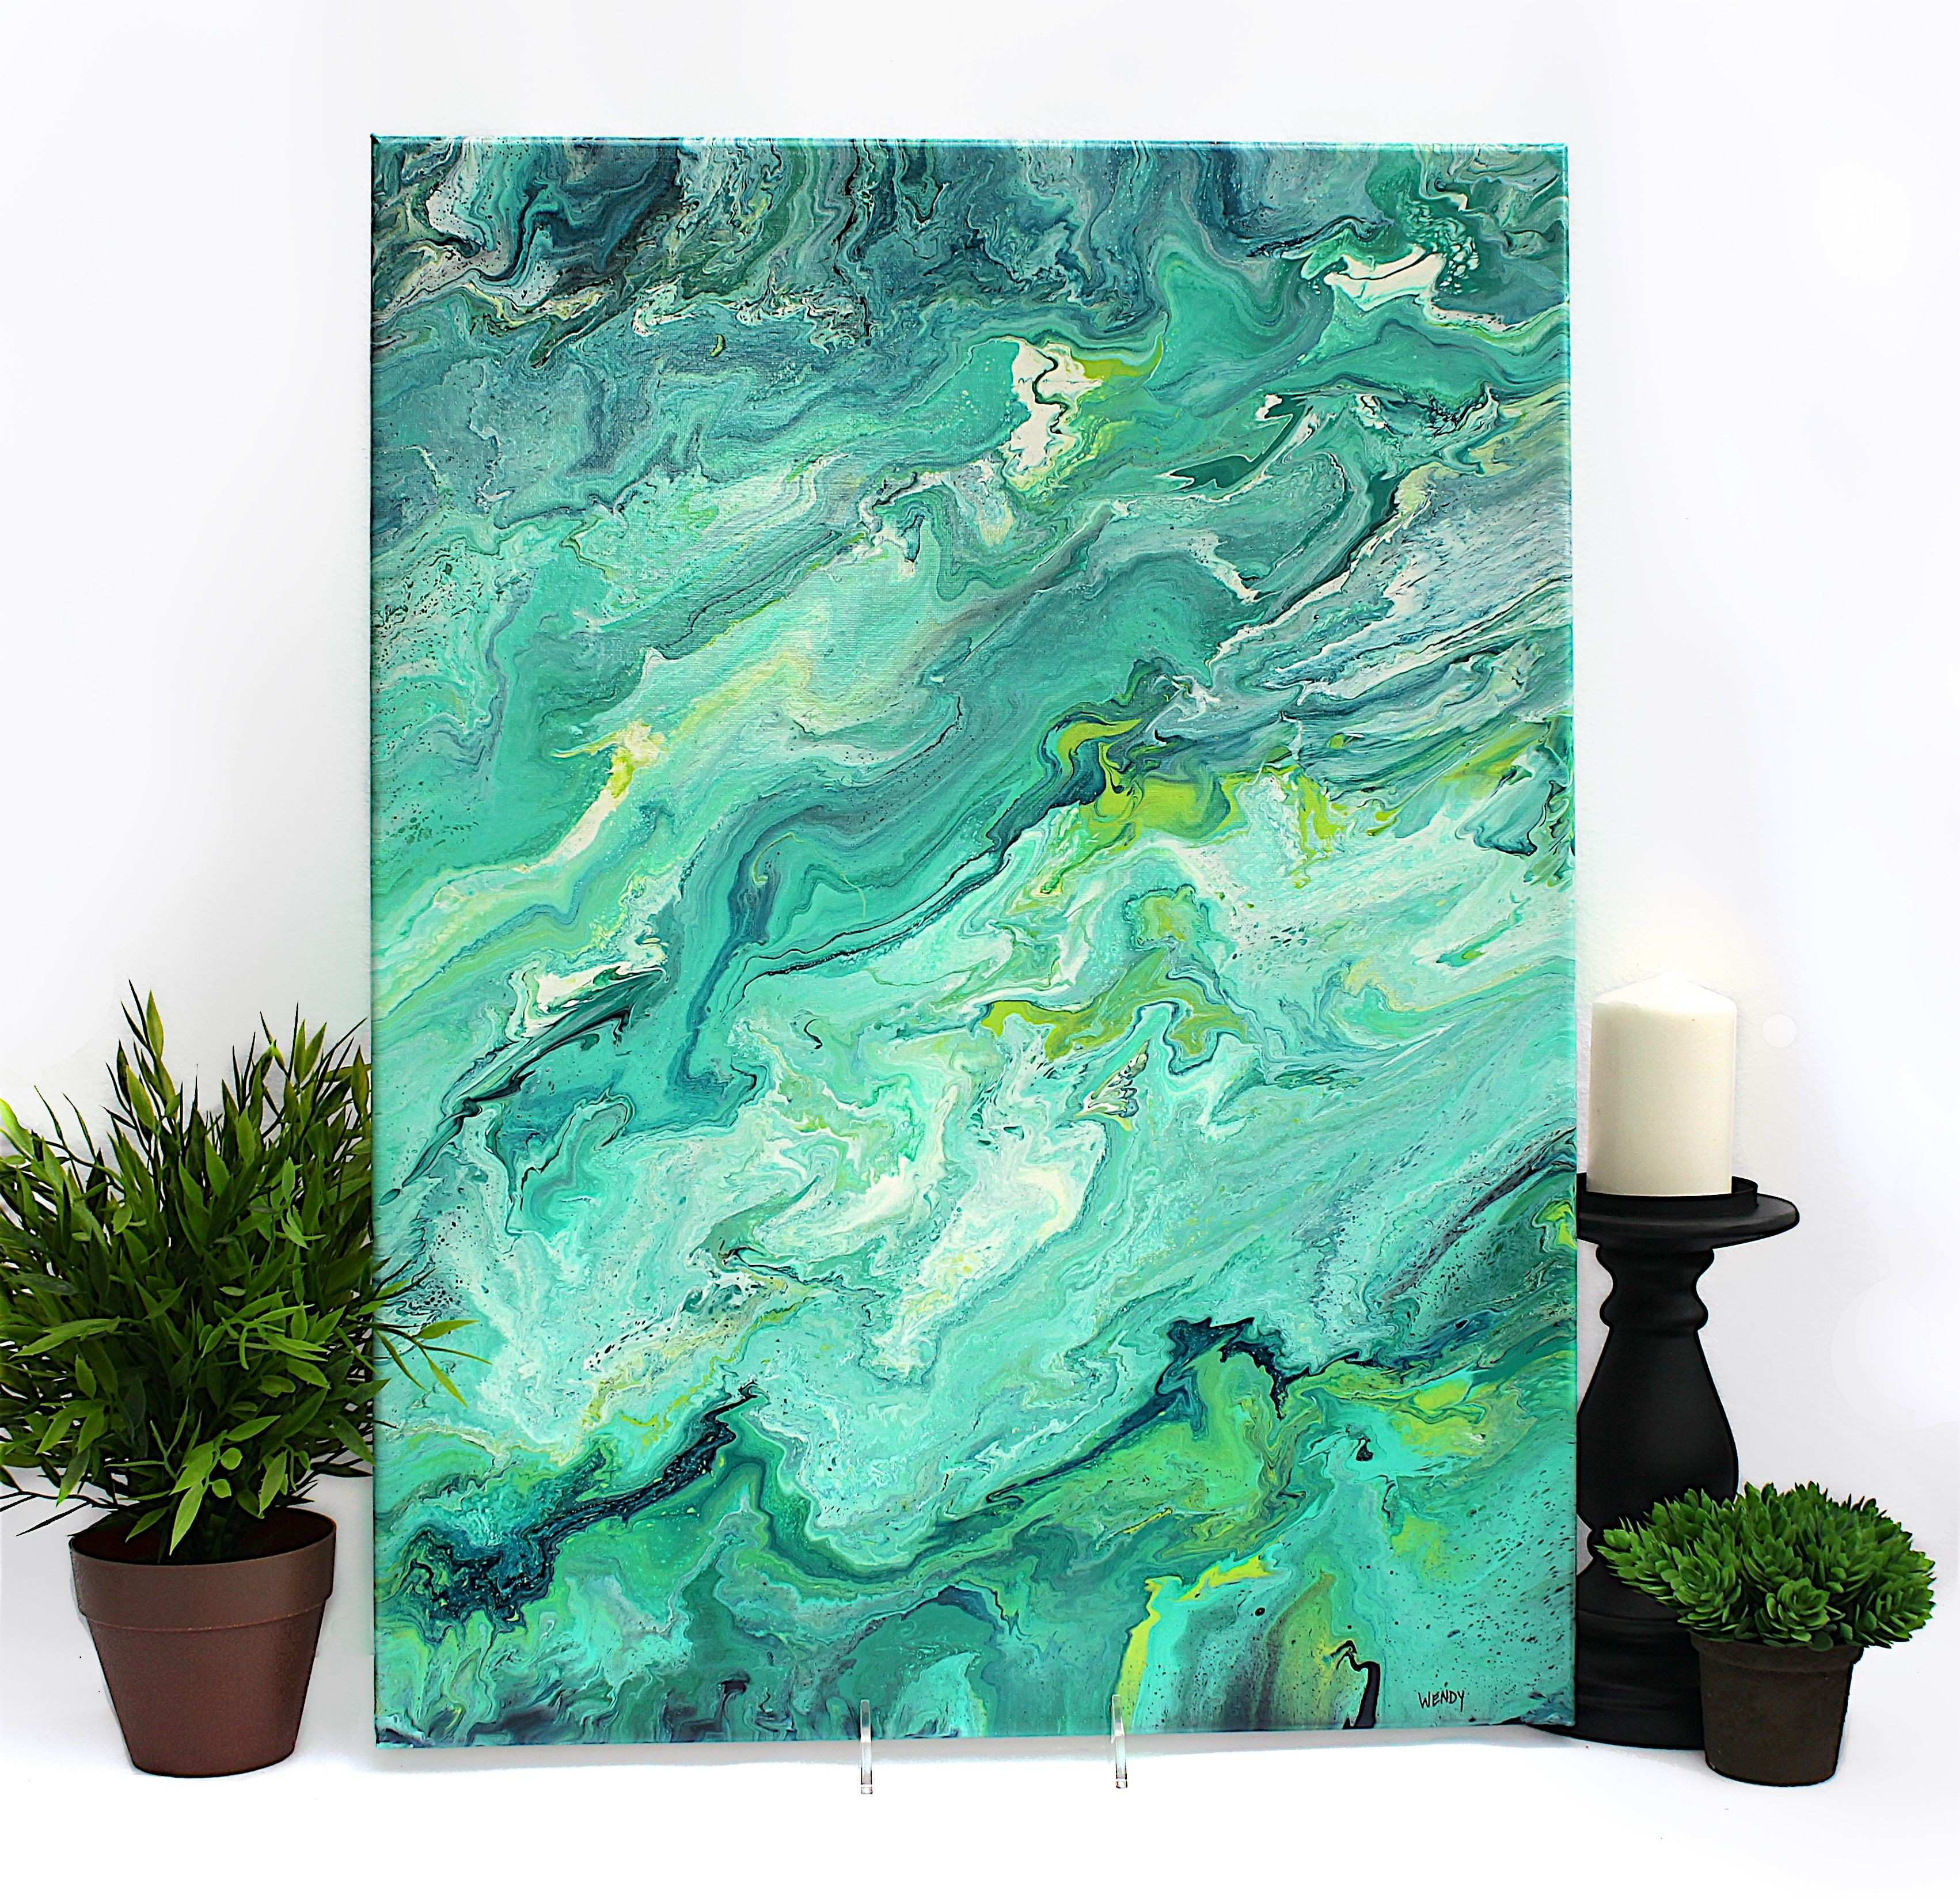 Modern Abstract Art Elegant Vibrant Teal and Aqua original Acrylic Abstract Painting 18x24 Inch